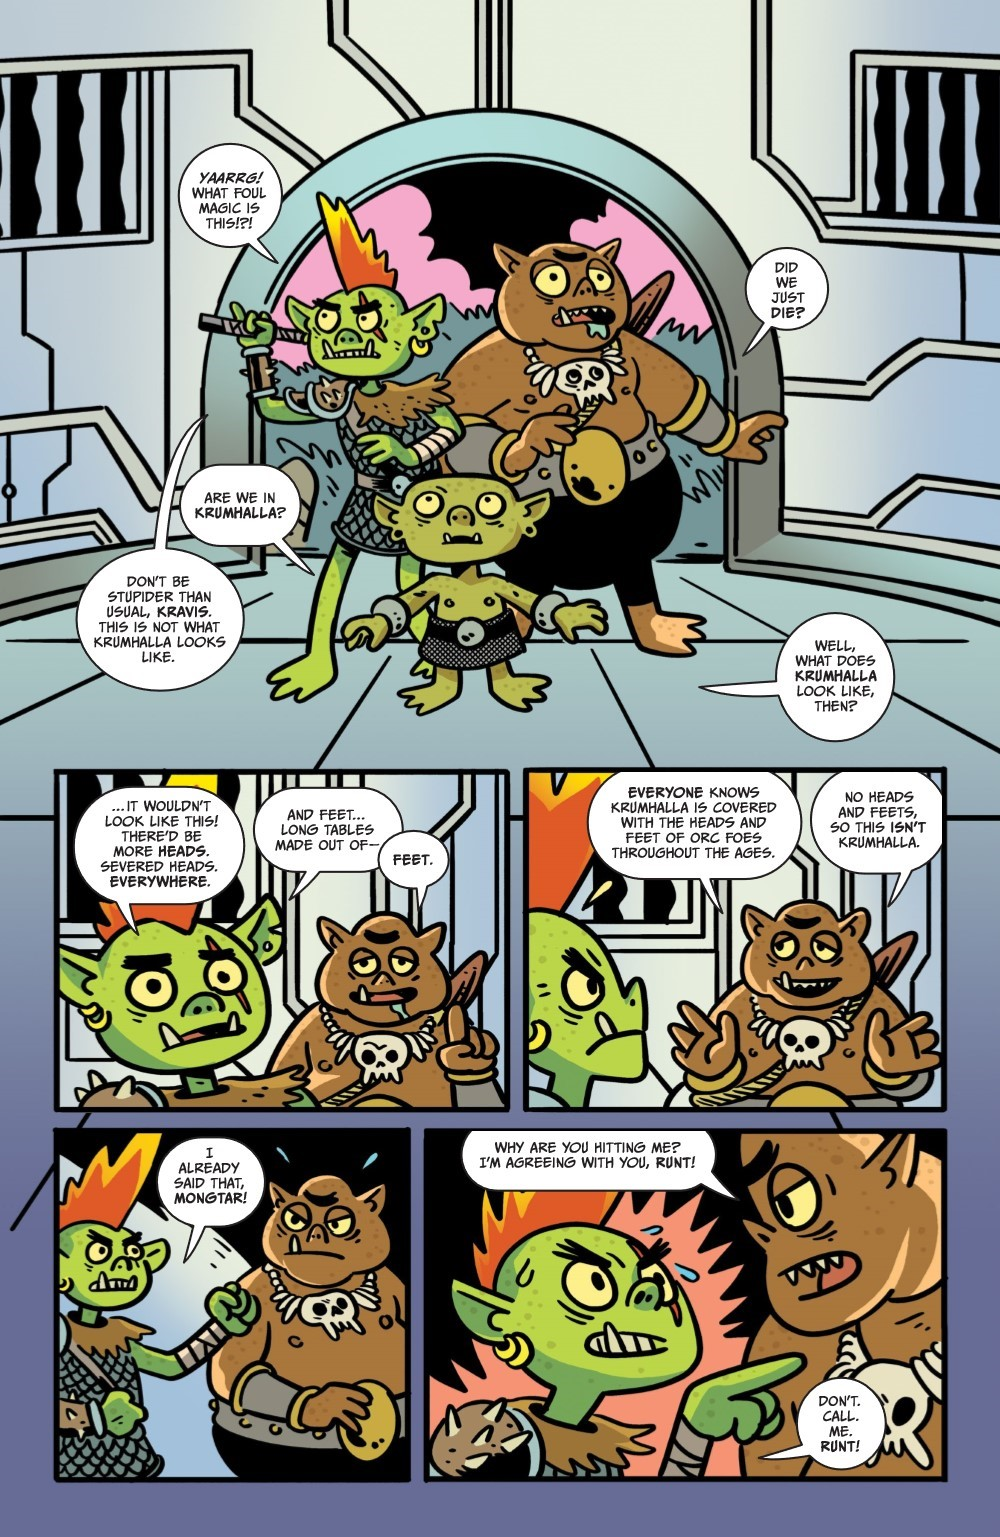 ORCSINSPACE-V1-REFERENCE-011 ComicList Previews: ORCS IN SPACE VOLUME 1 TP